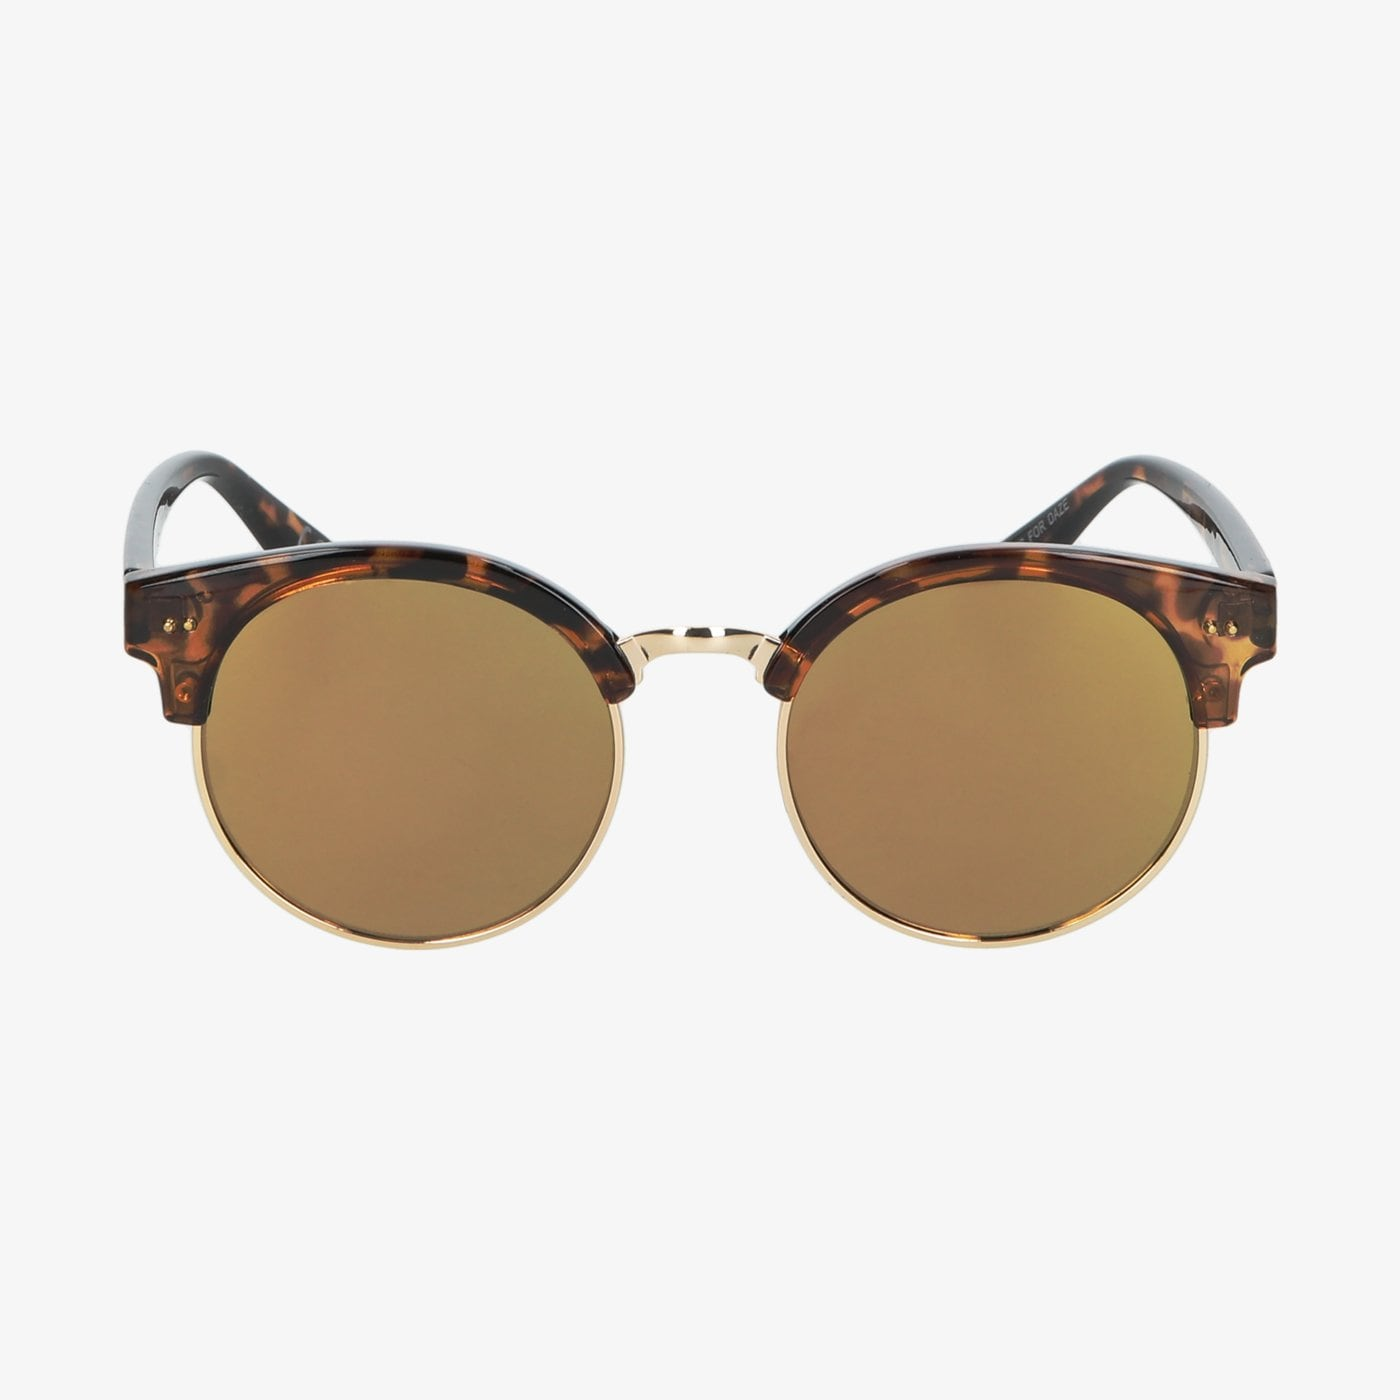 VANS OCHELARI WM RAYS FOR DAZE SUNGLASSES TORTOISE/SUNSETMIR